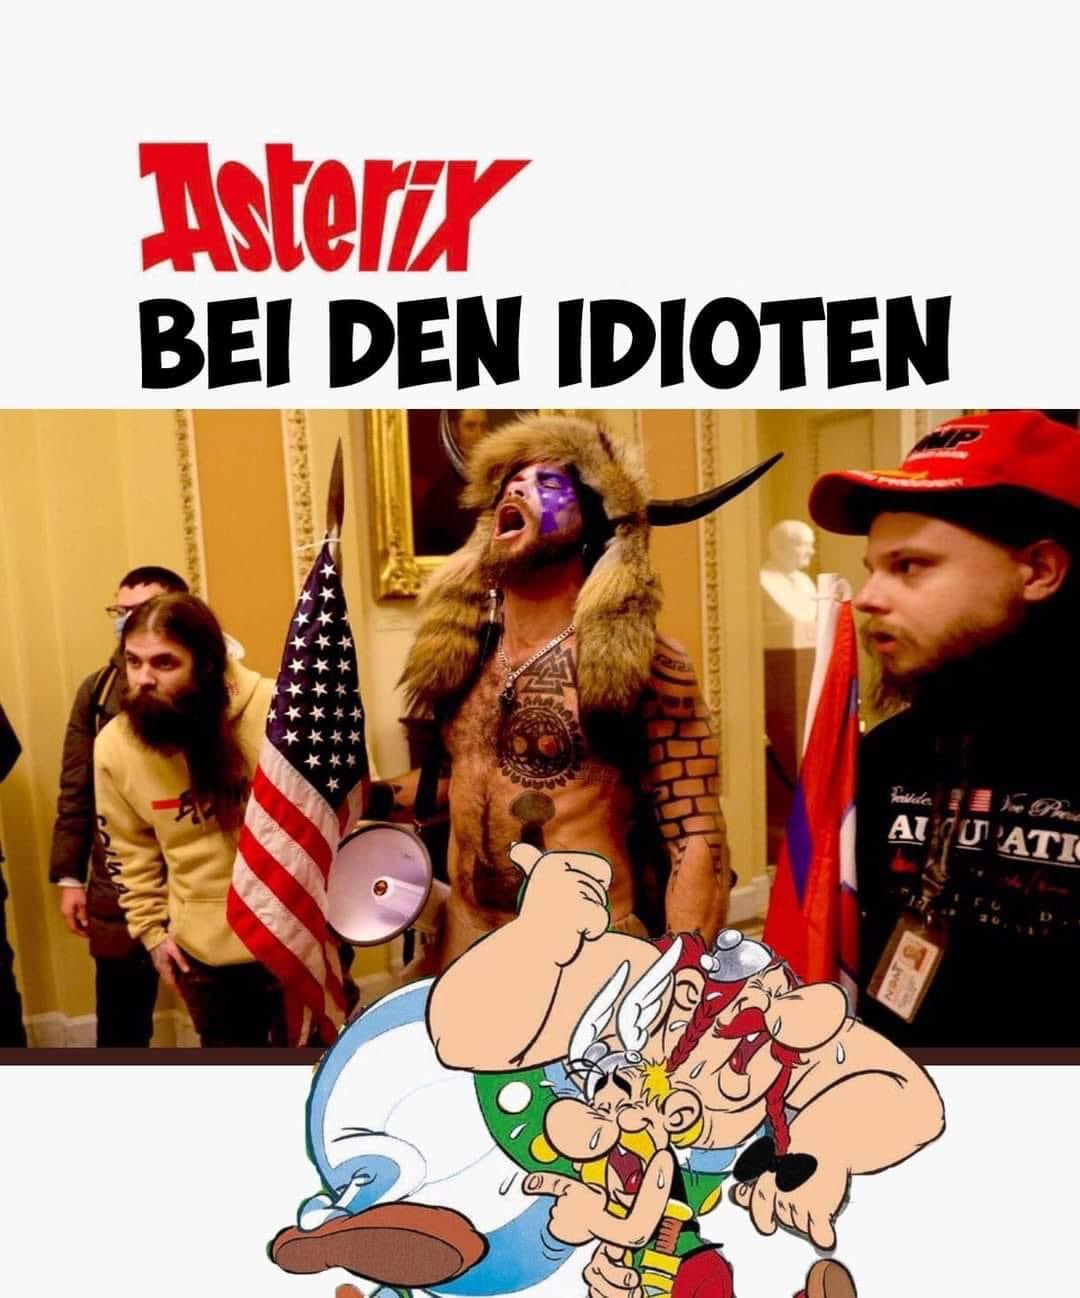 deplorables Asterix Idioten Kakadu < DEPLORABLE #domestic terrorism